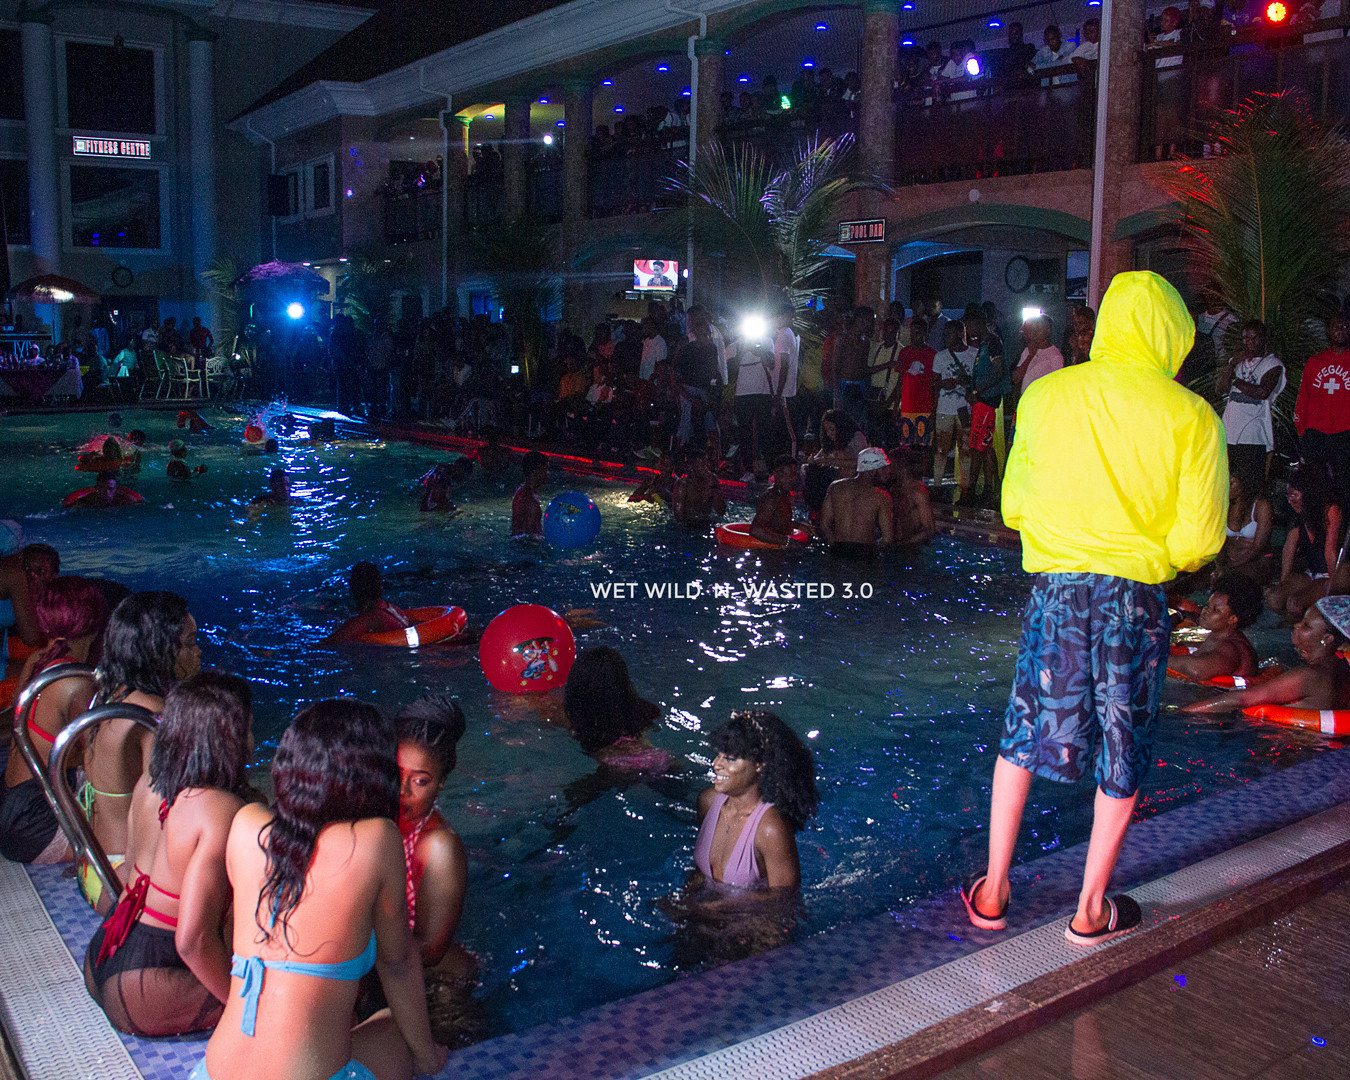 The Pool Party That Got Many People Wasted(WET WILD